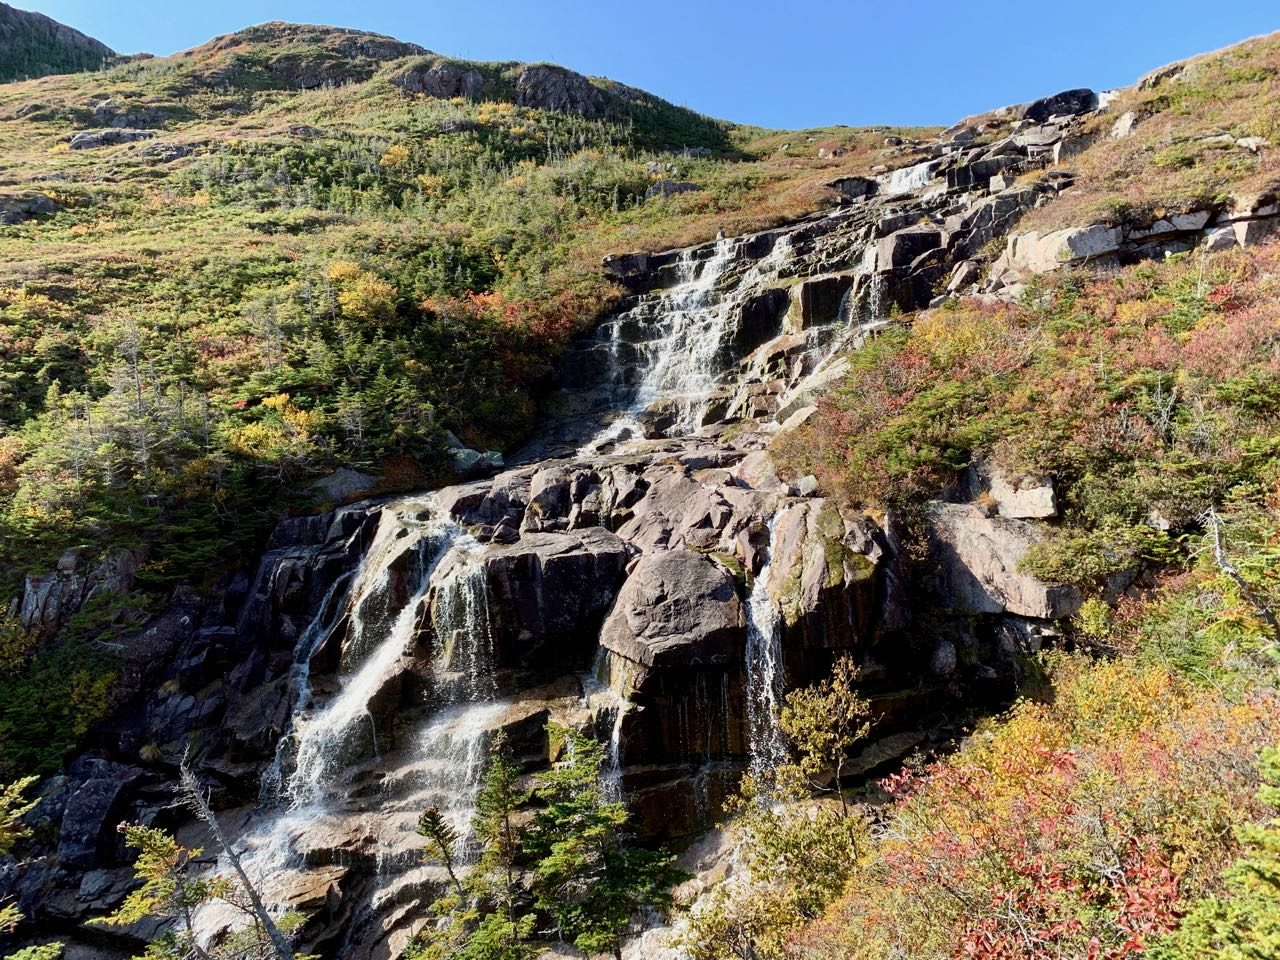 Newfoundland Cruise: Hike to a scenic waterfall and forage for berries in Francois.